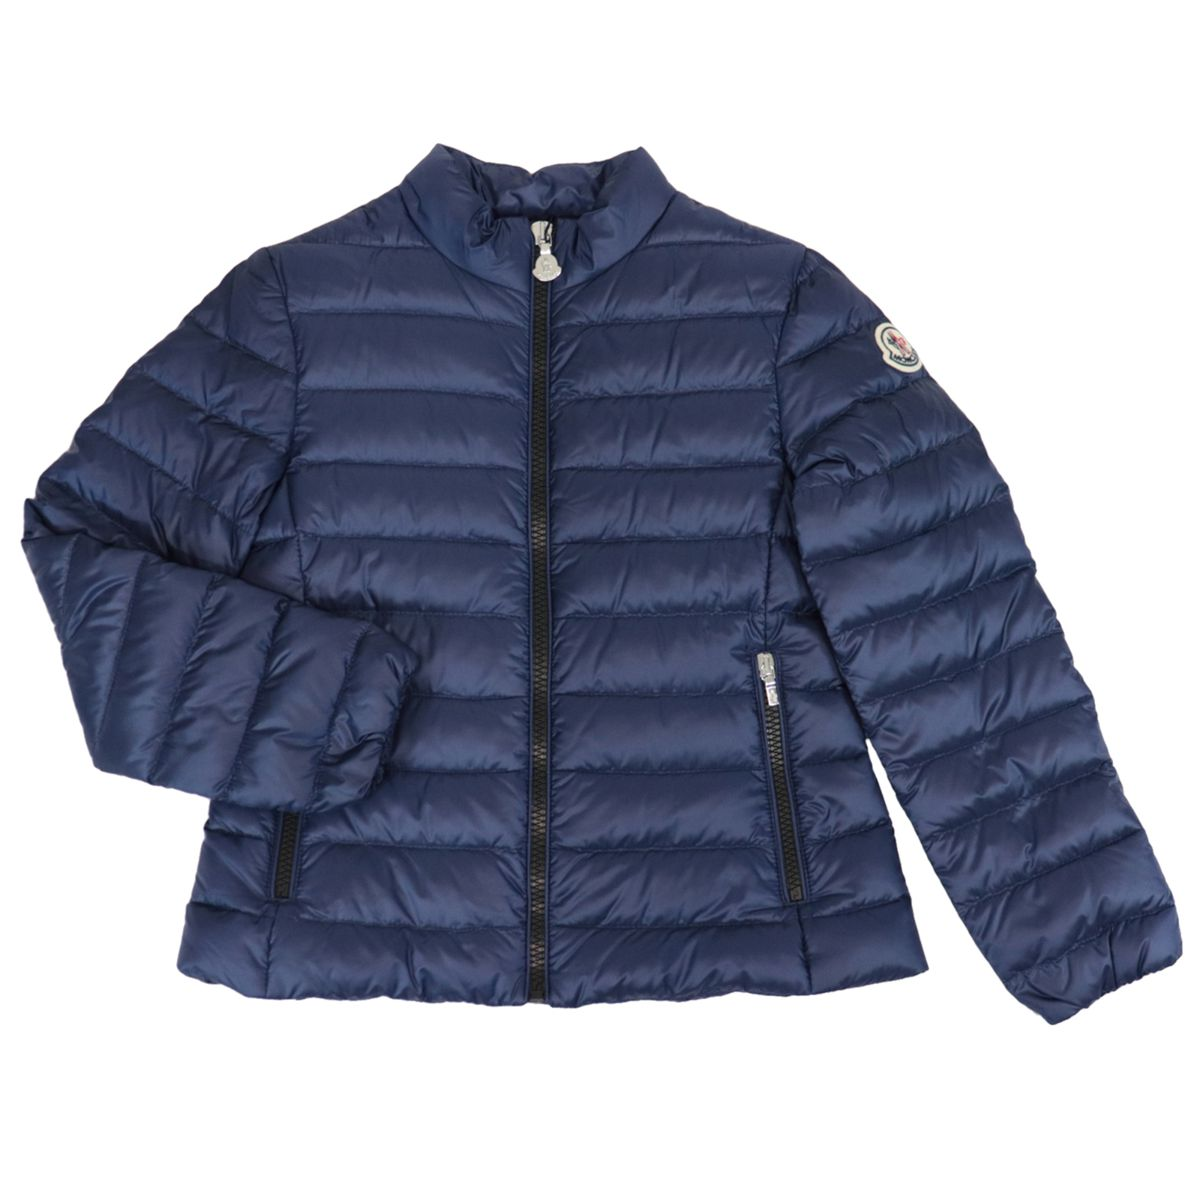 Kaukura quilted nylon down jacket with logo patch Navy Moncler